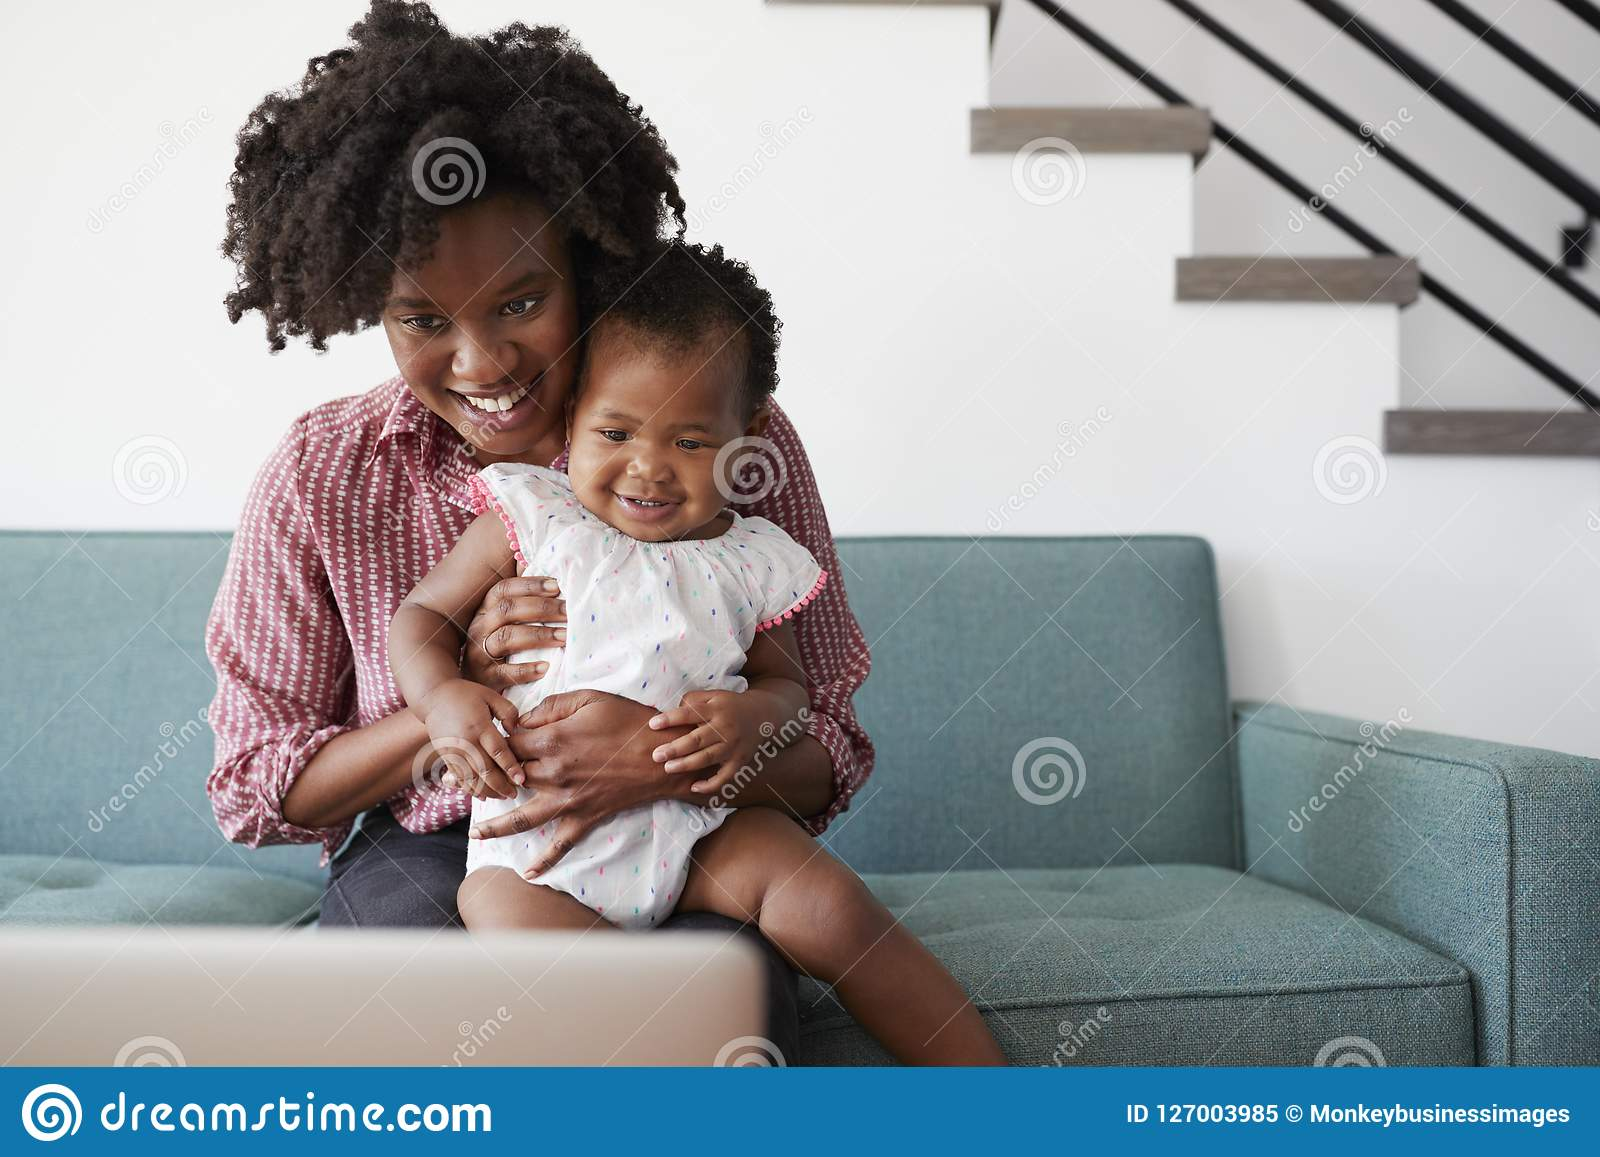 Mother With Baby Daughter Sitting On Sofa At Home Looking At Laptop Computer